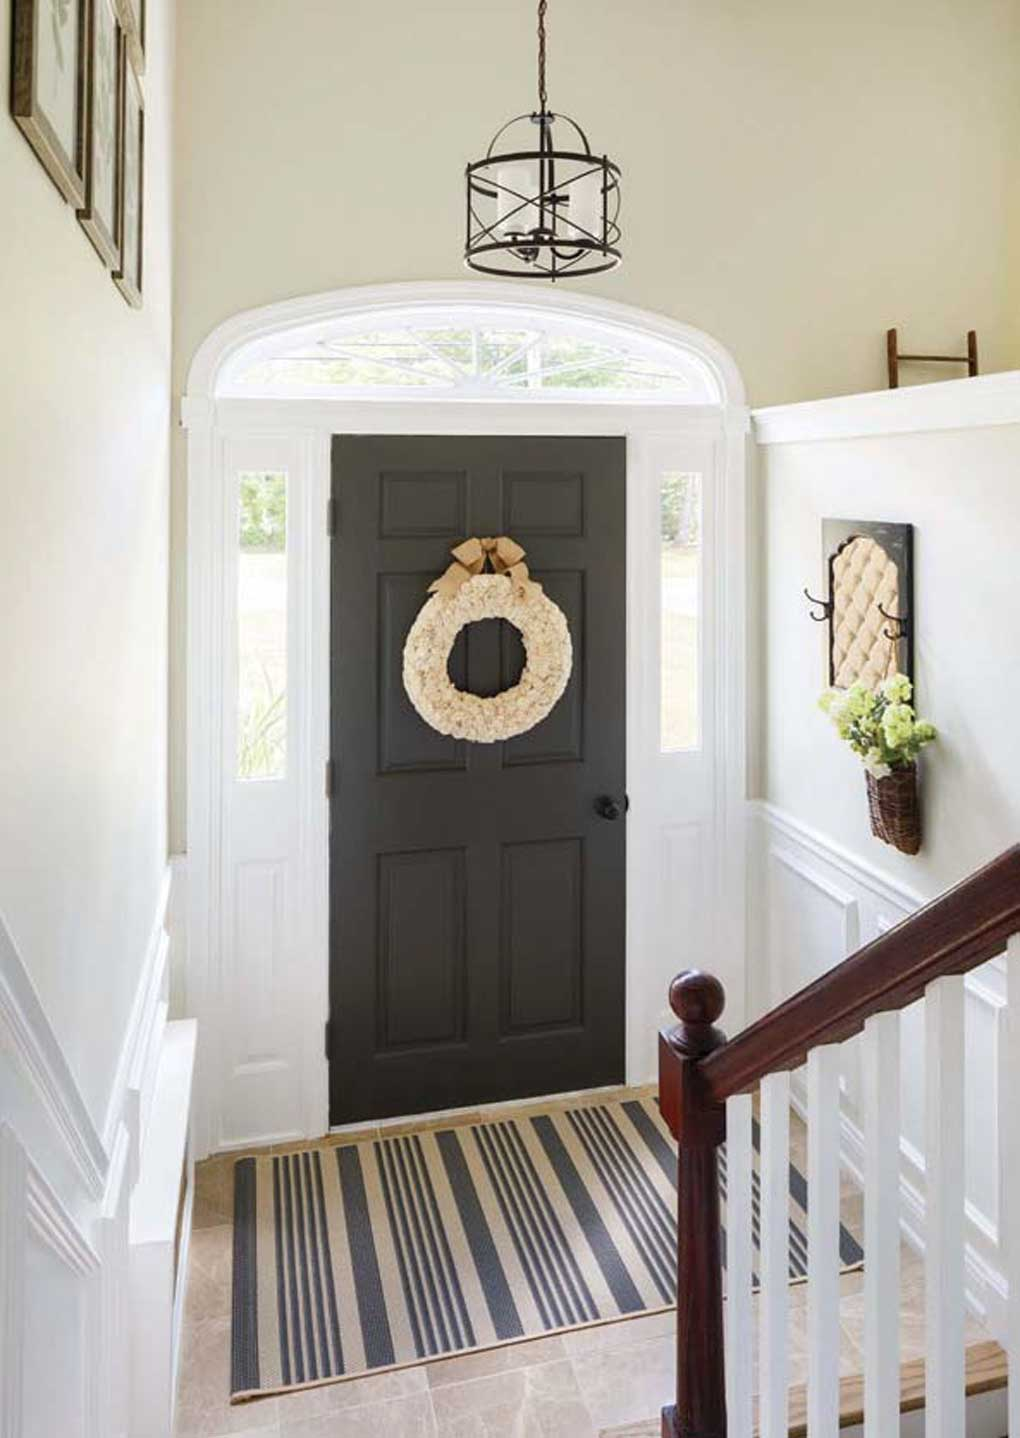 Large foyer with a hanging pendant lamp, beige floor tile and a black front door with a wreath.